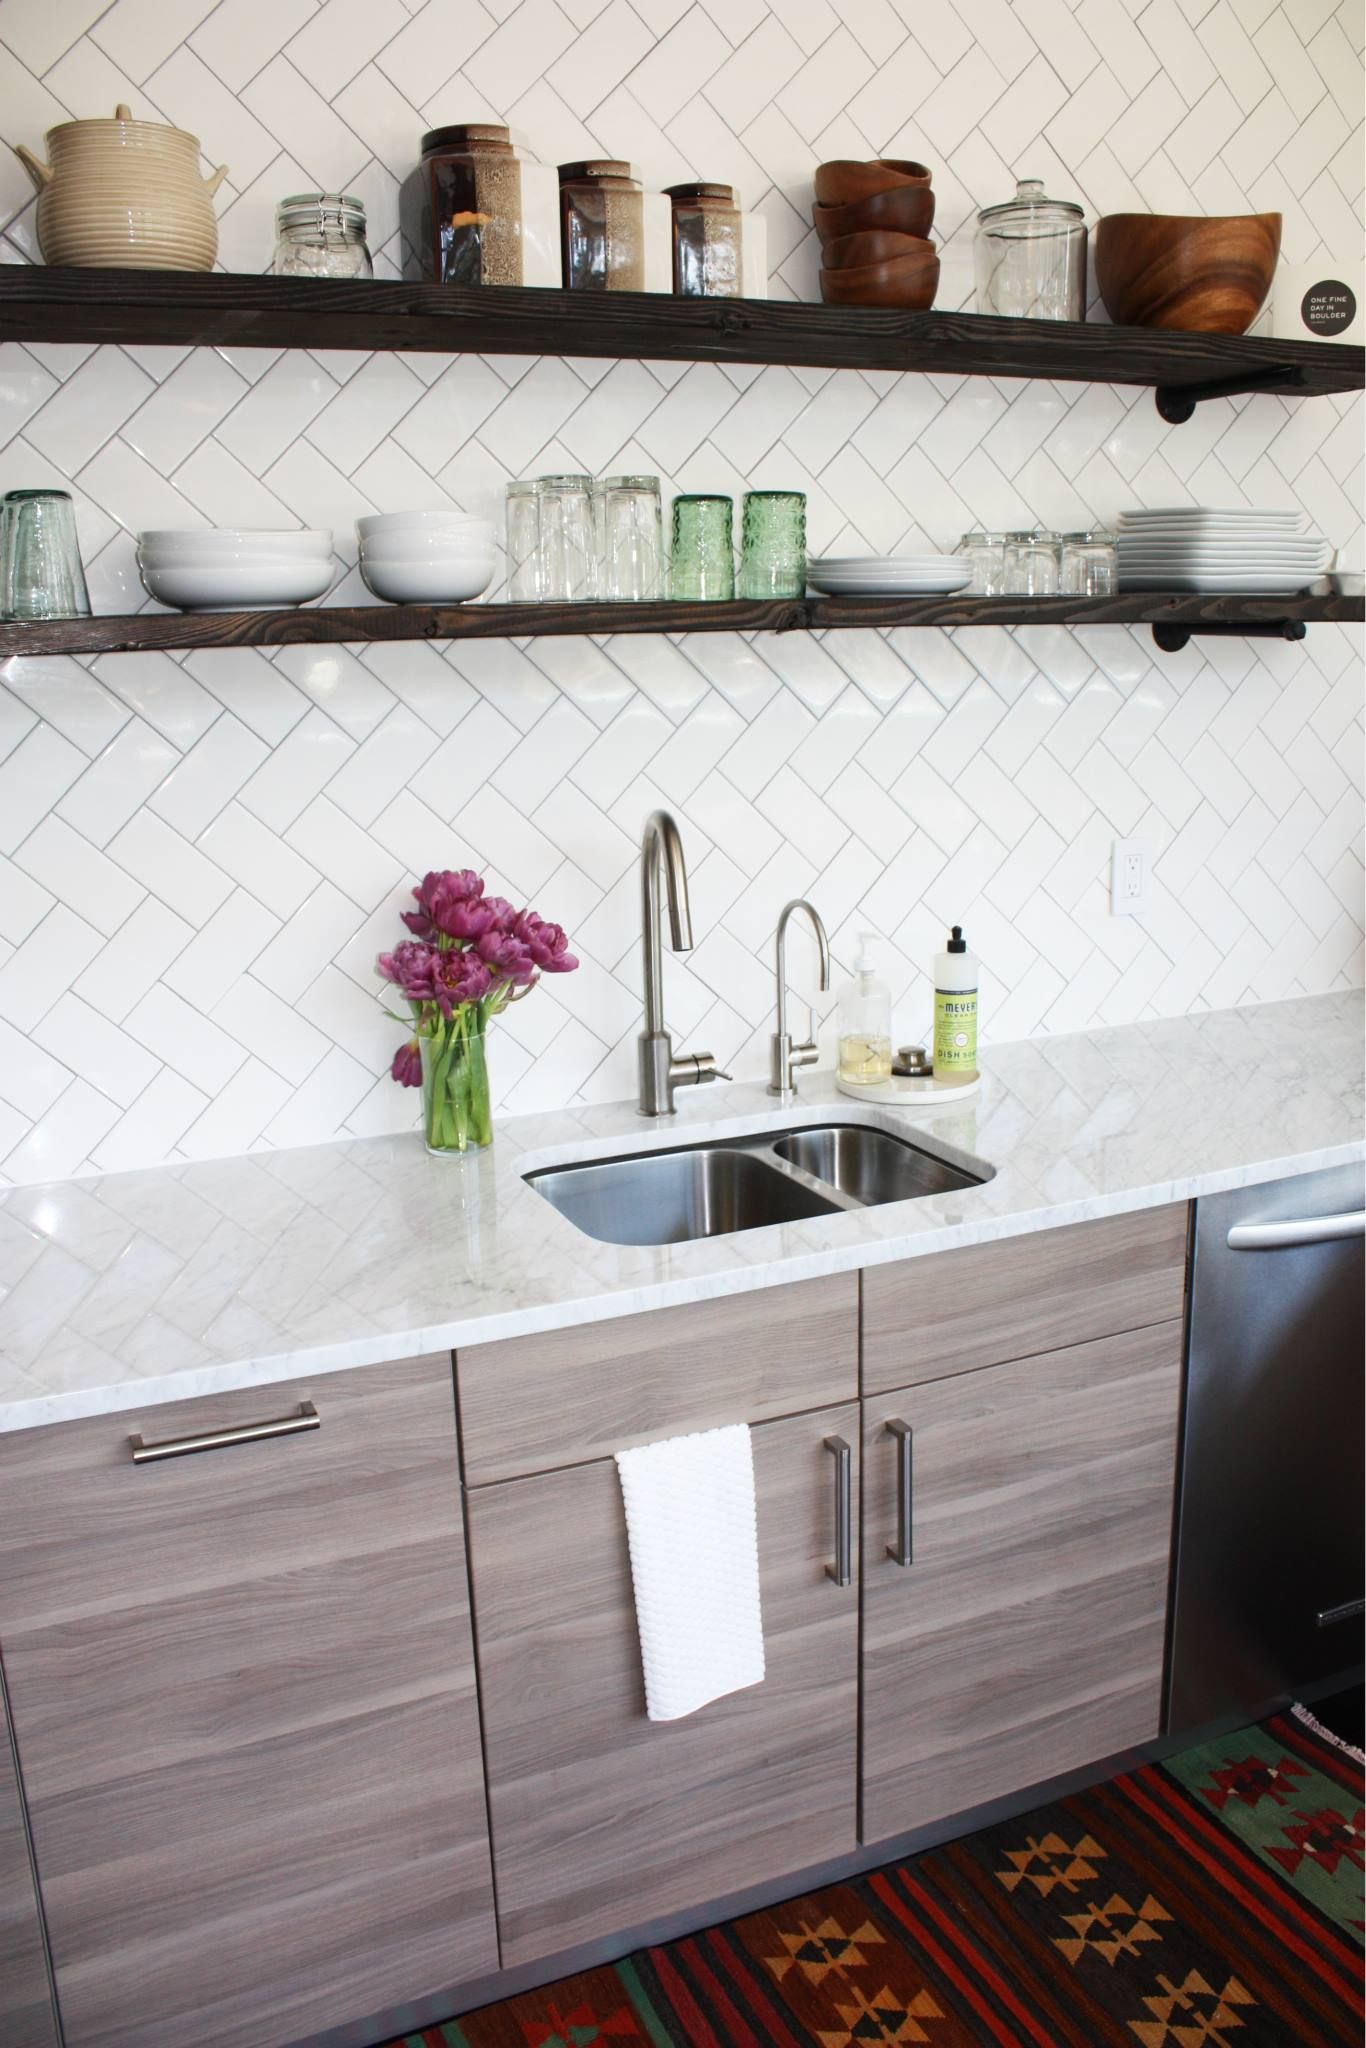 Inexpensive Backsplash Ideas Kitchen Renovations Part - 21: DIY Kitchen Renovation/Remodel, Before And After Boulder, Co Ikea Sofielund  Cabinets Open Shelving Herringbone Tile Backsplash